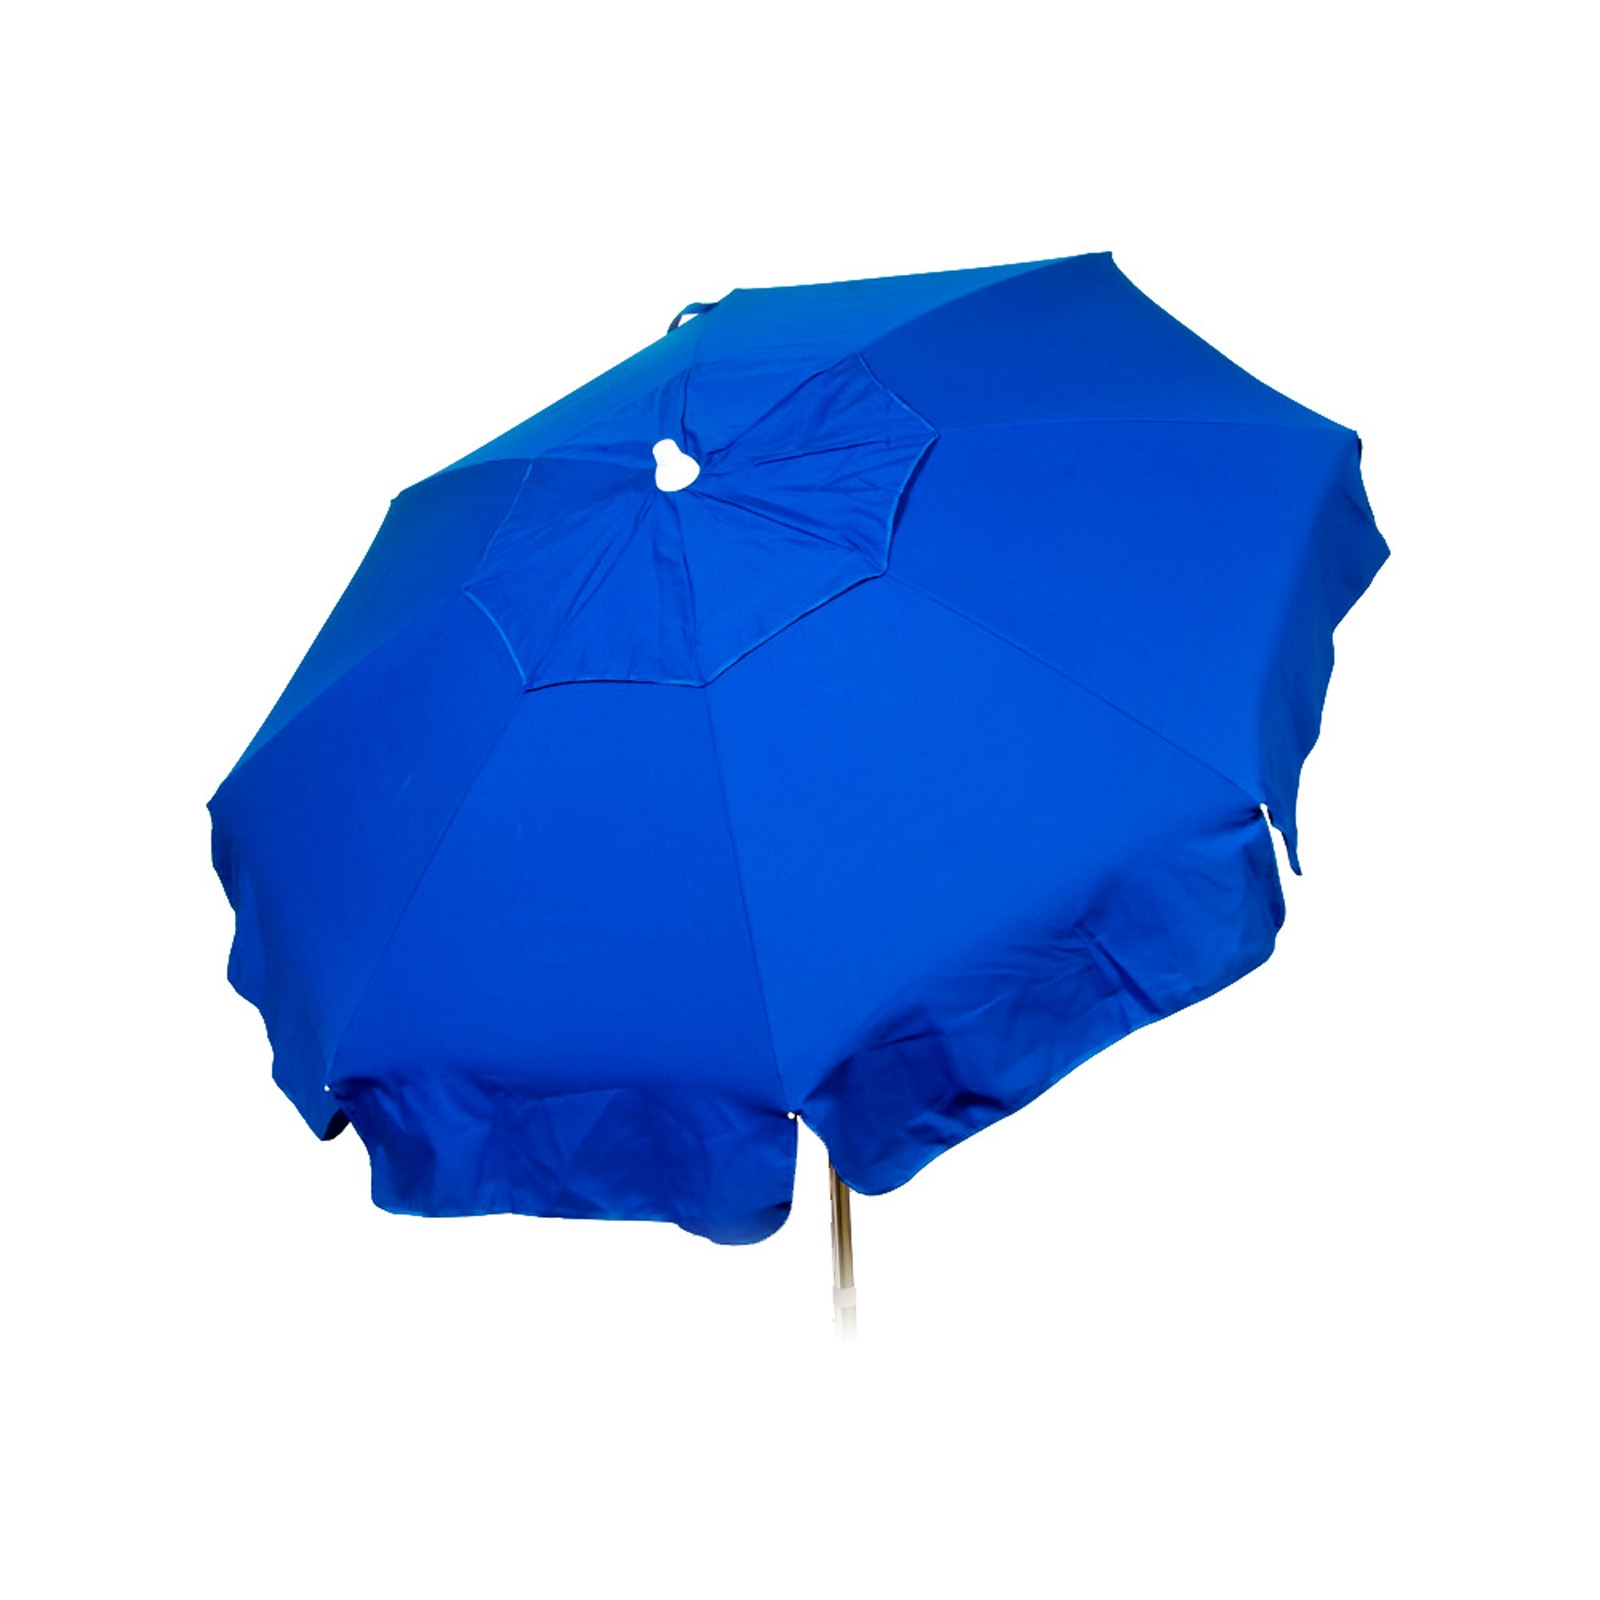 6ft Italian Market Tilt Umbrella Home Patio Canopy Sun Shelter Blue -